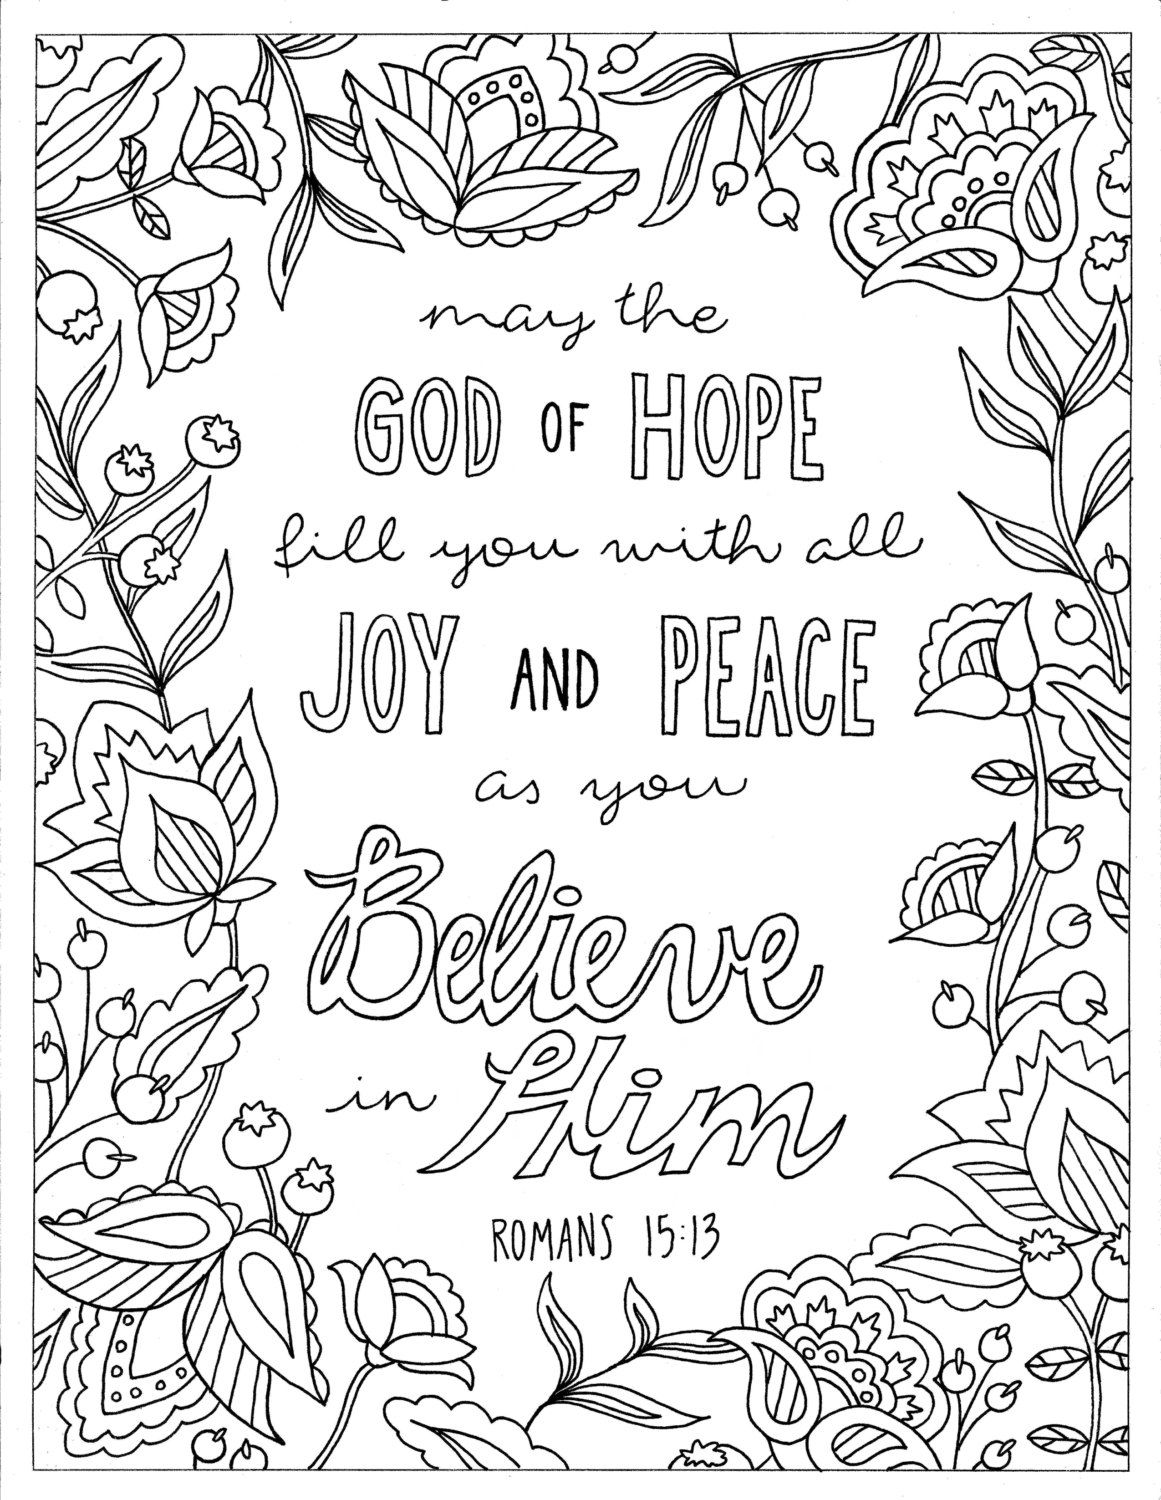 bible verse christian coloring pages bible verse coloring page ephesians 432 printable digital coloring pages christian bible verse